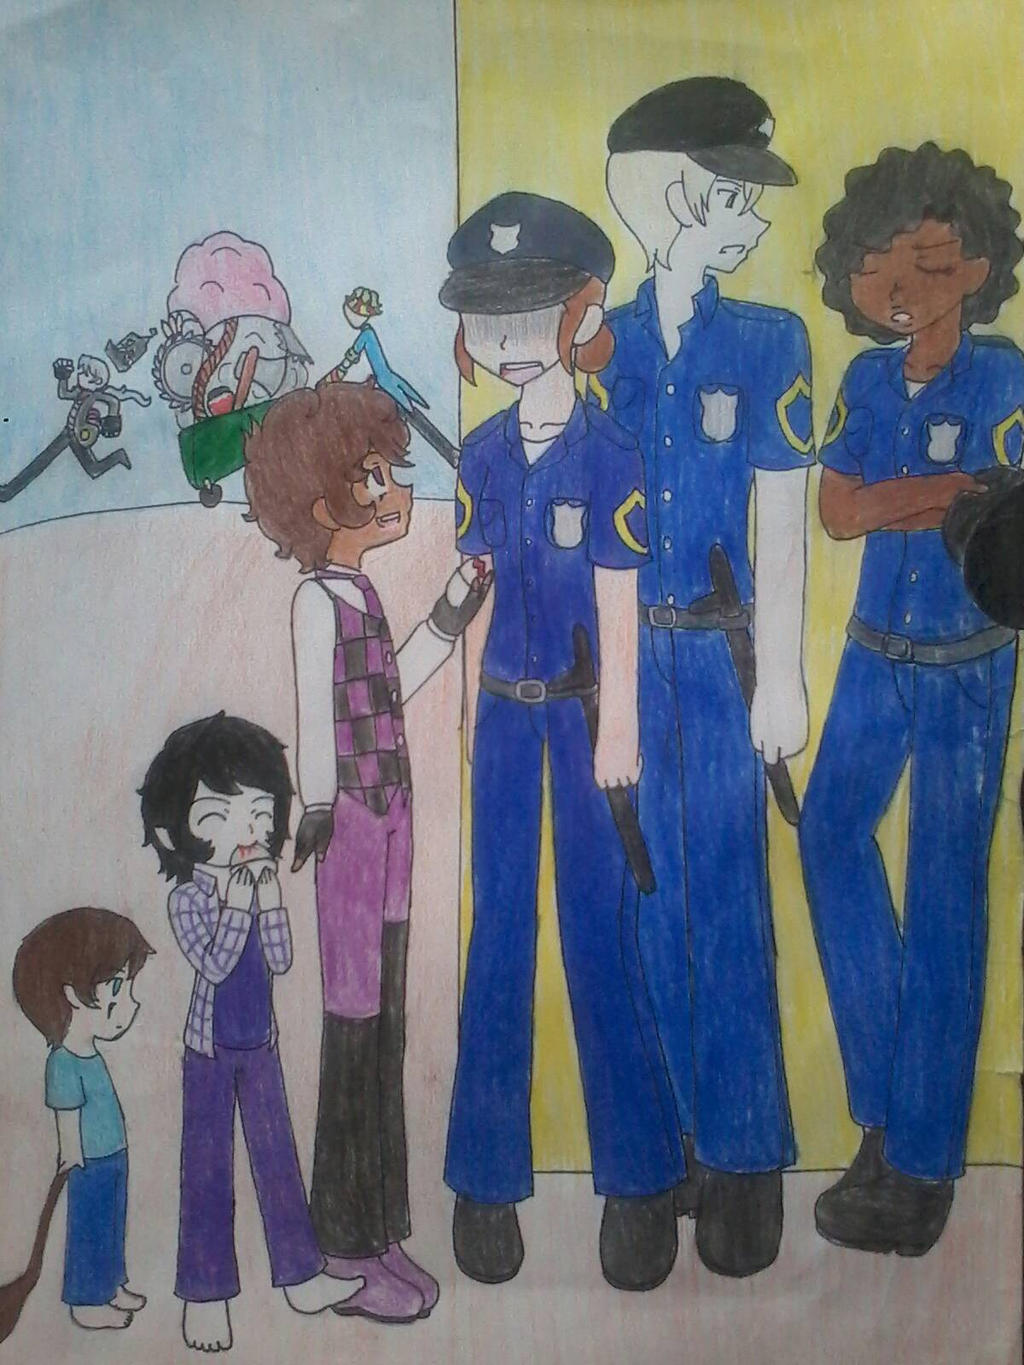 16. Stop The Police!  by Sofiathefirst